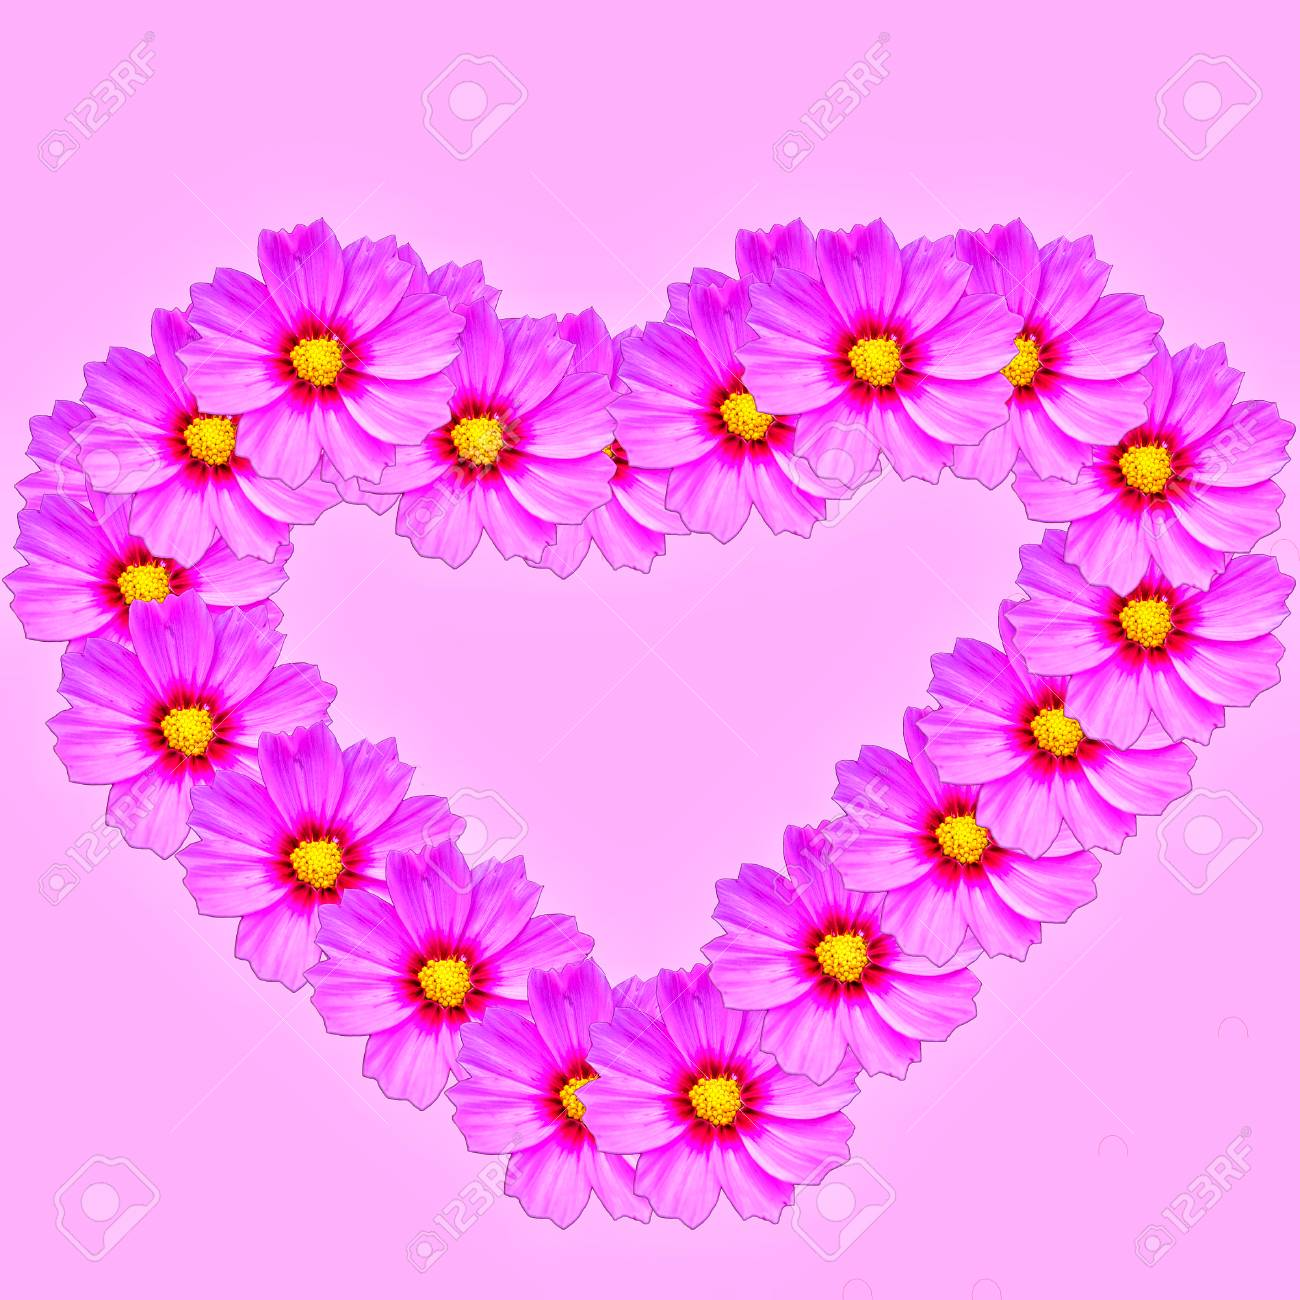 Concept Ideas Heart Shaped Made Of Pink Flowers For Textures Stock